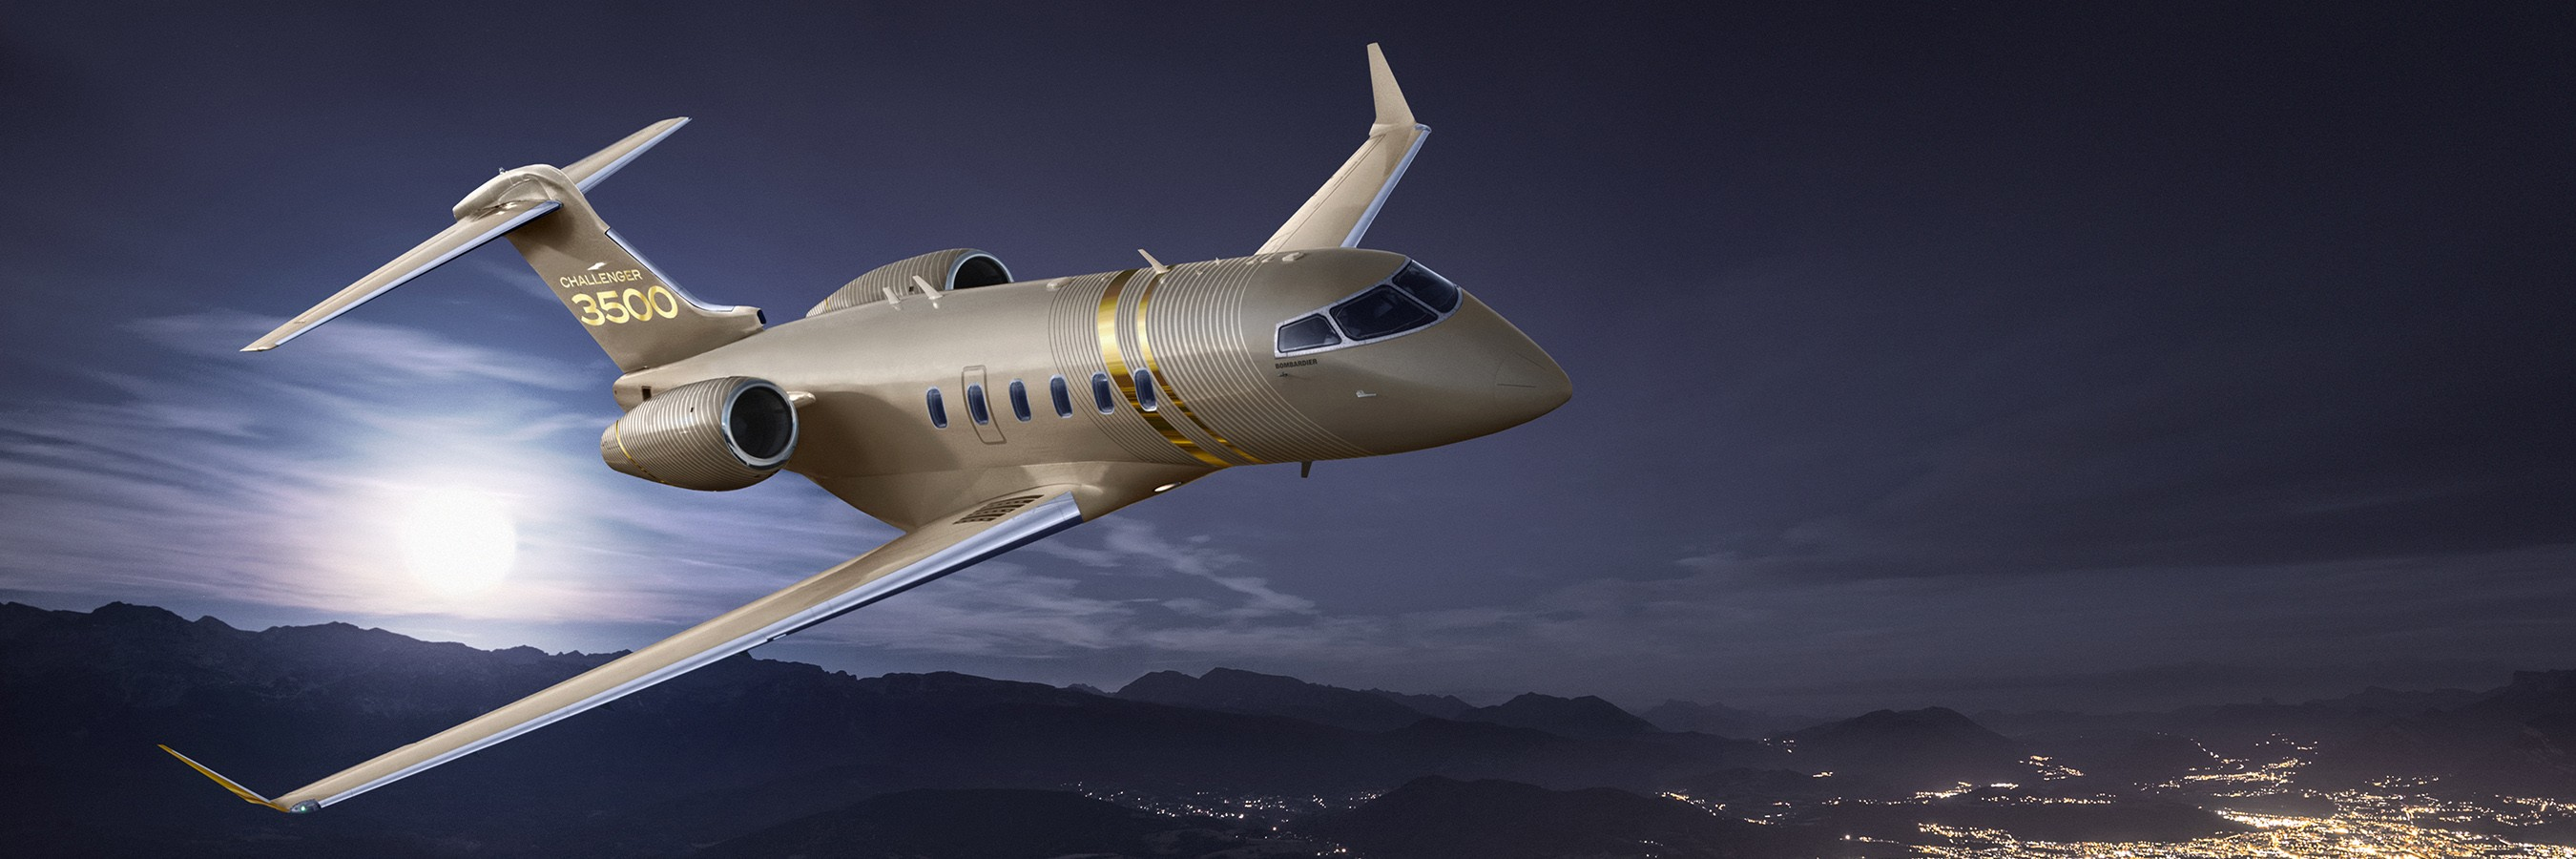 Introducing the Challenger 3500